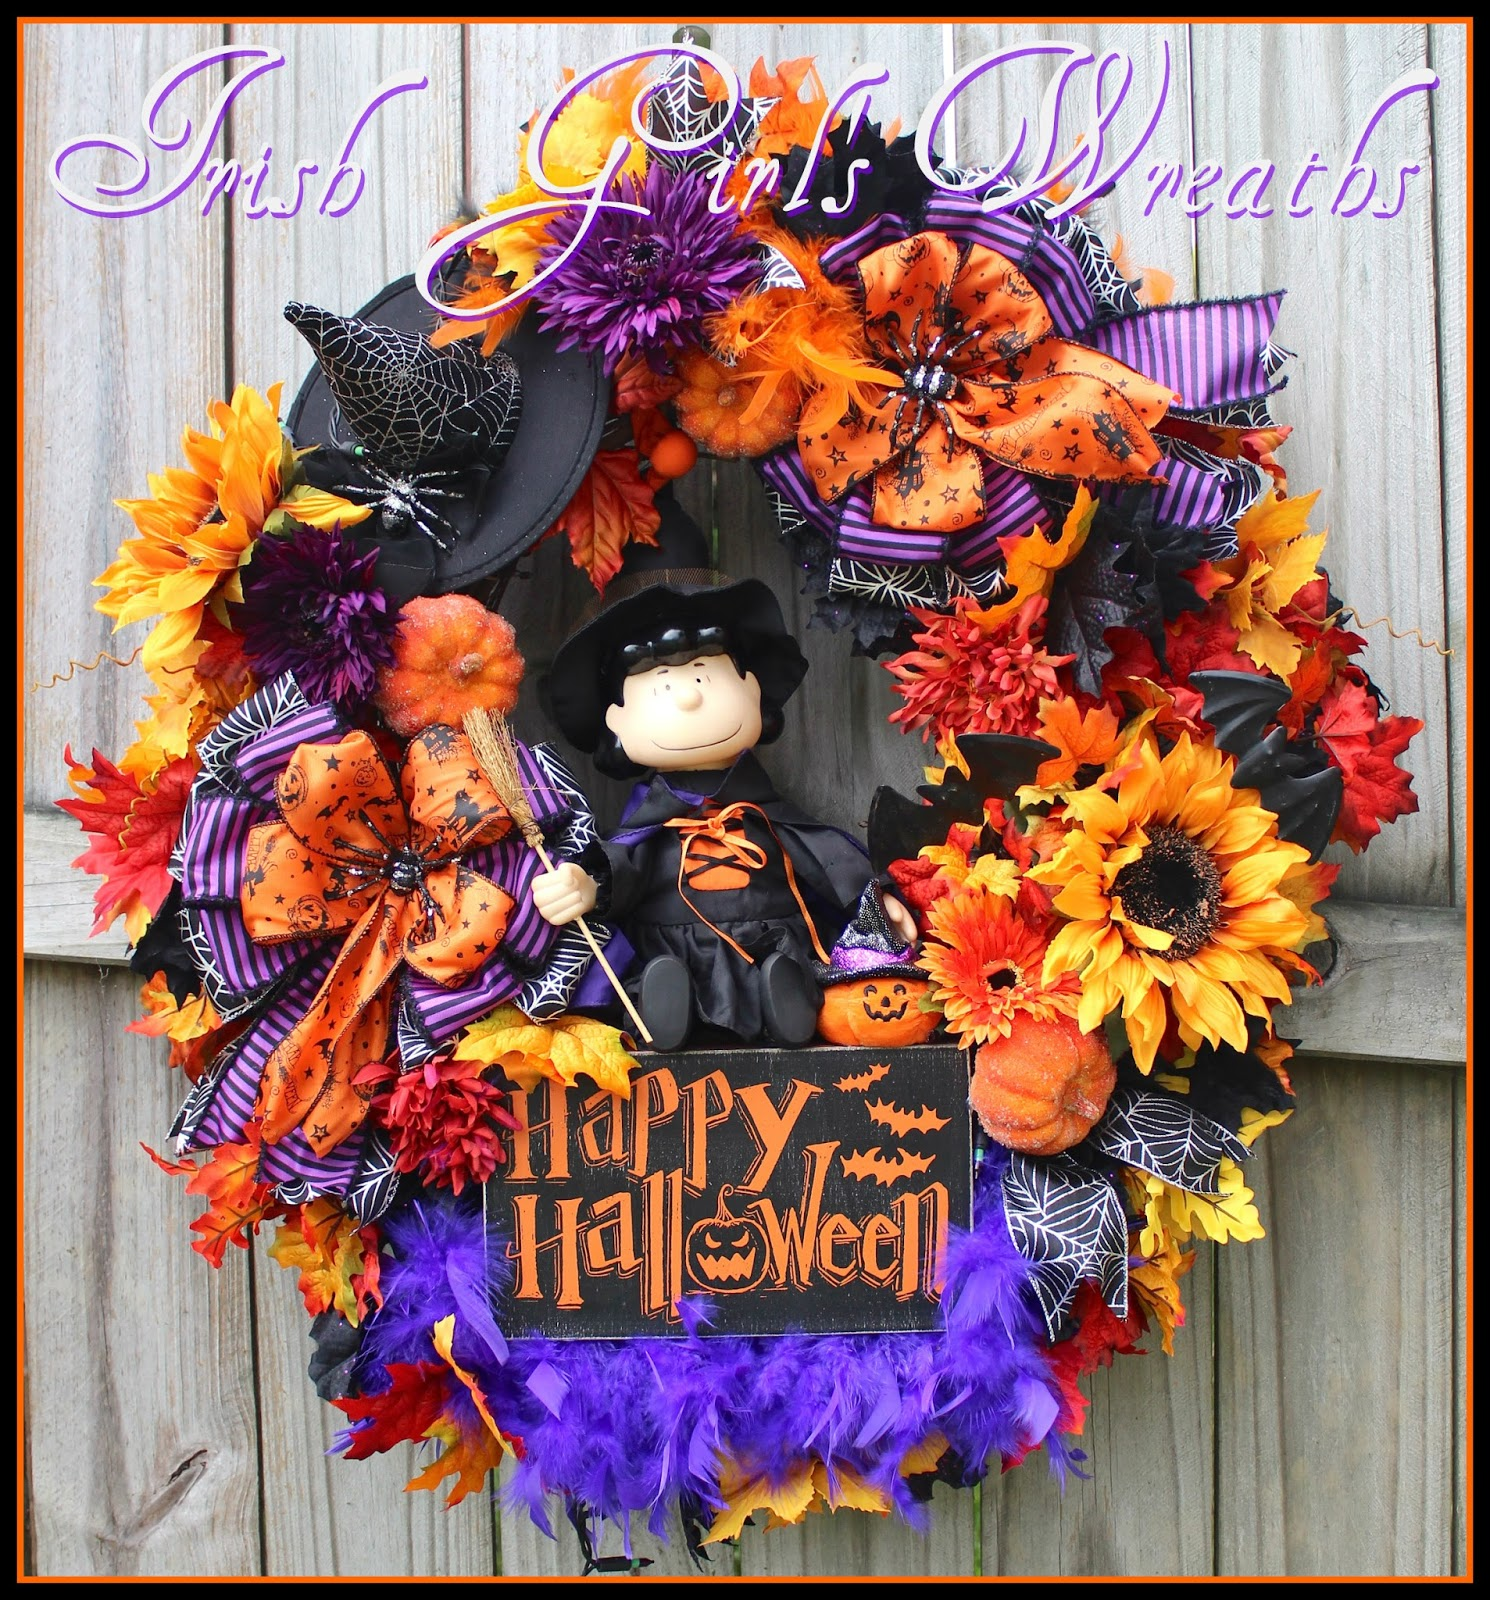 Custom Witch Lucy Peanuts Halloween Wreath, for Alison